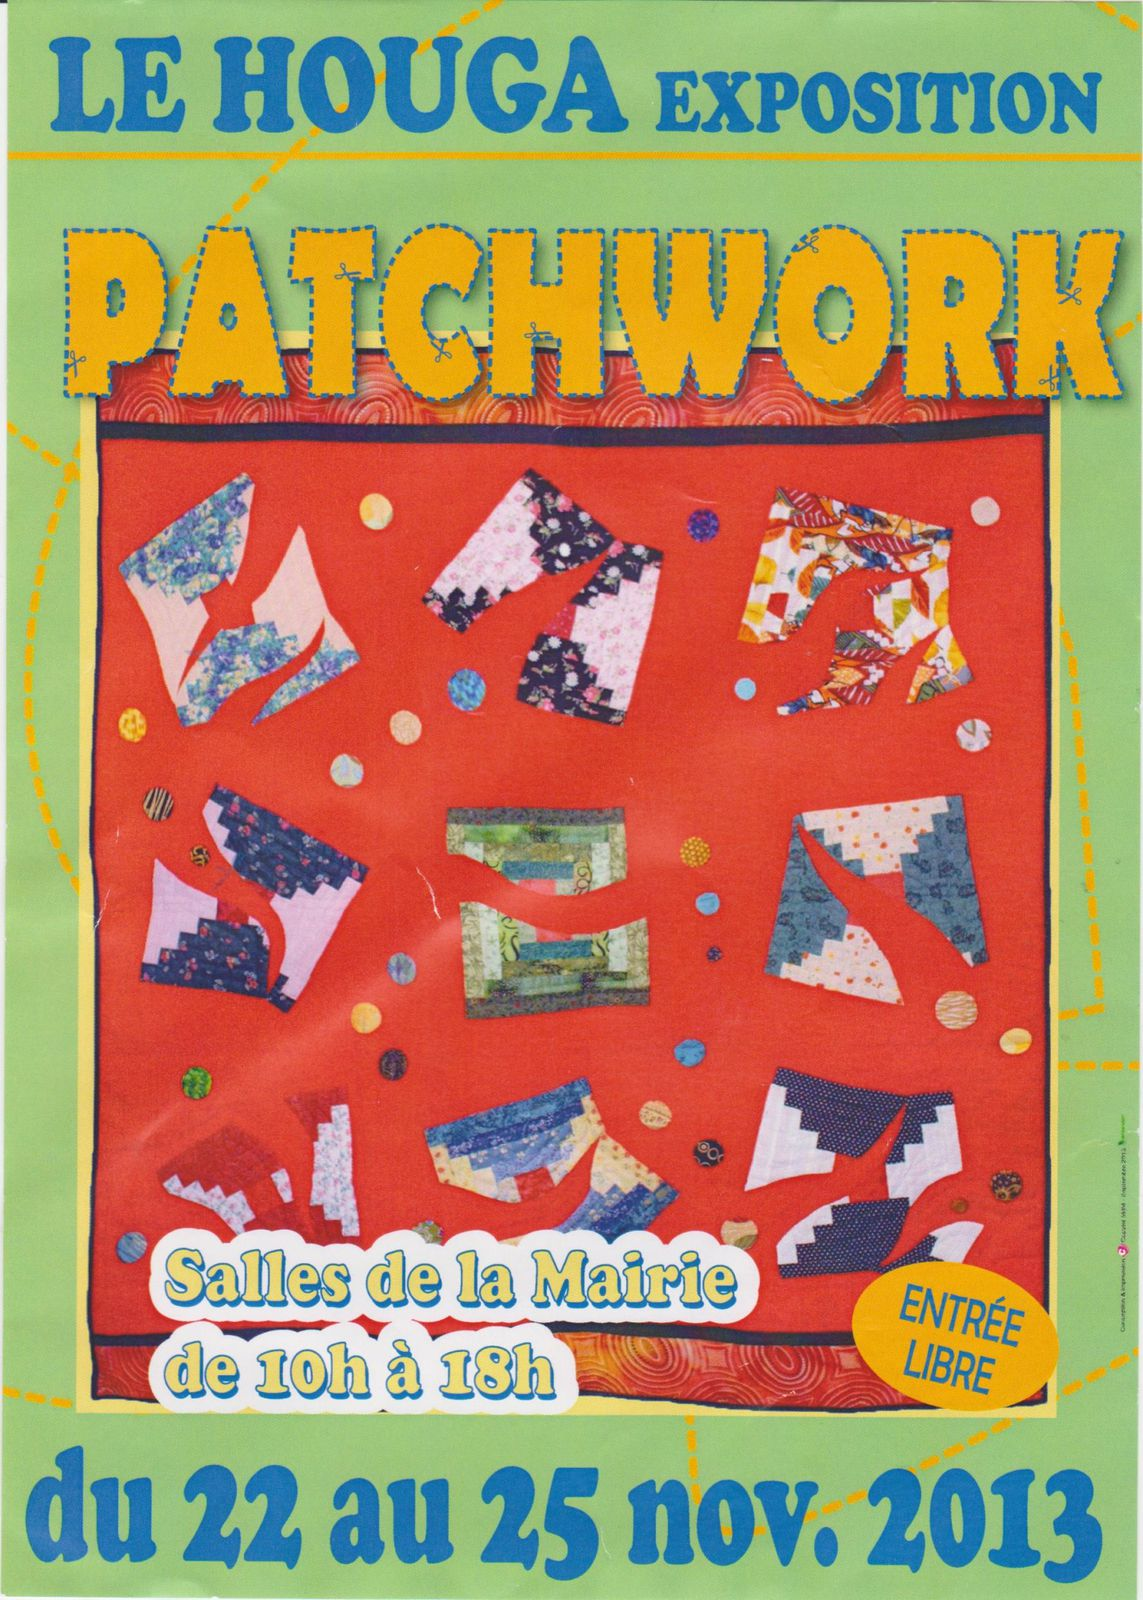 Exposition patchwork au Houga!